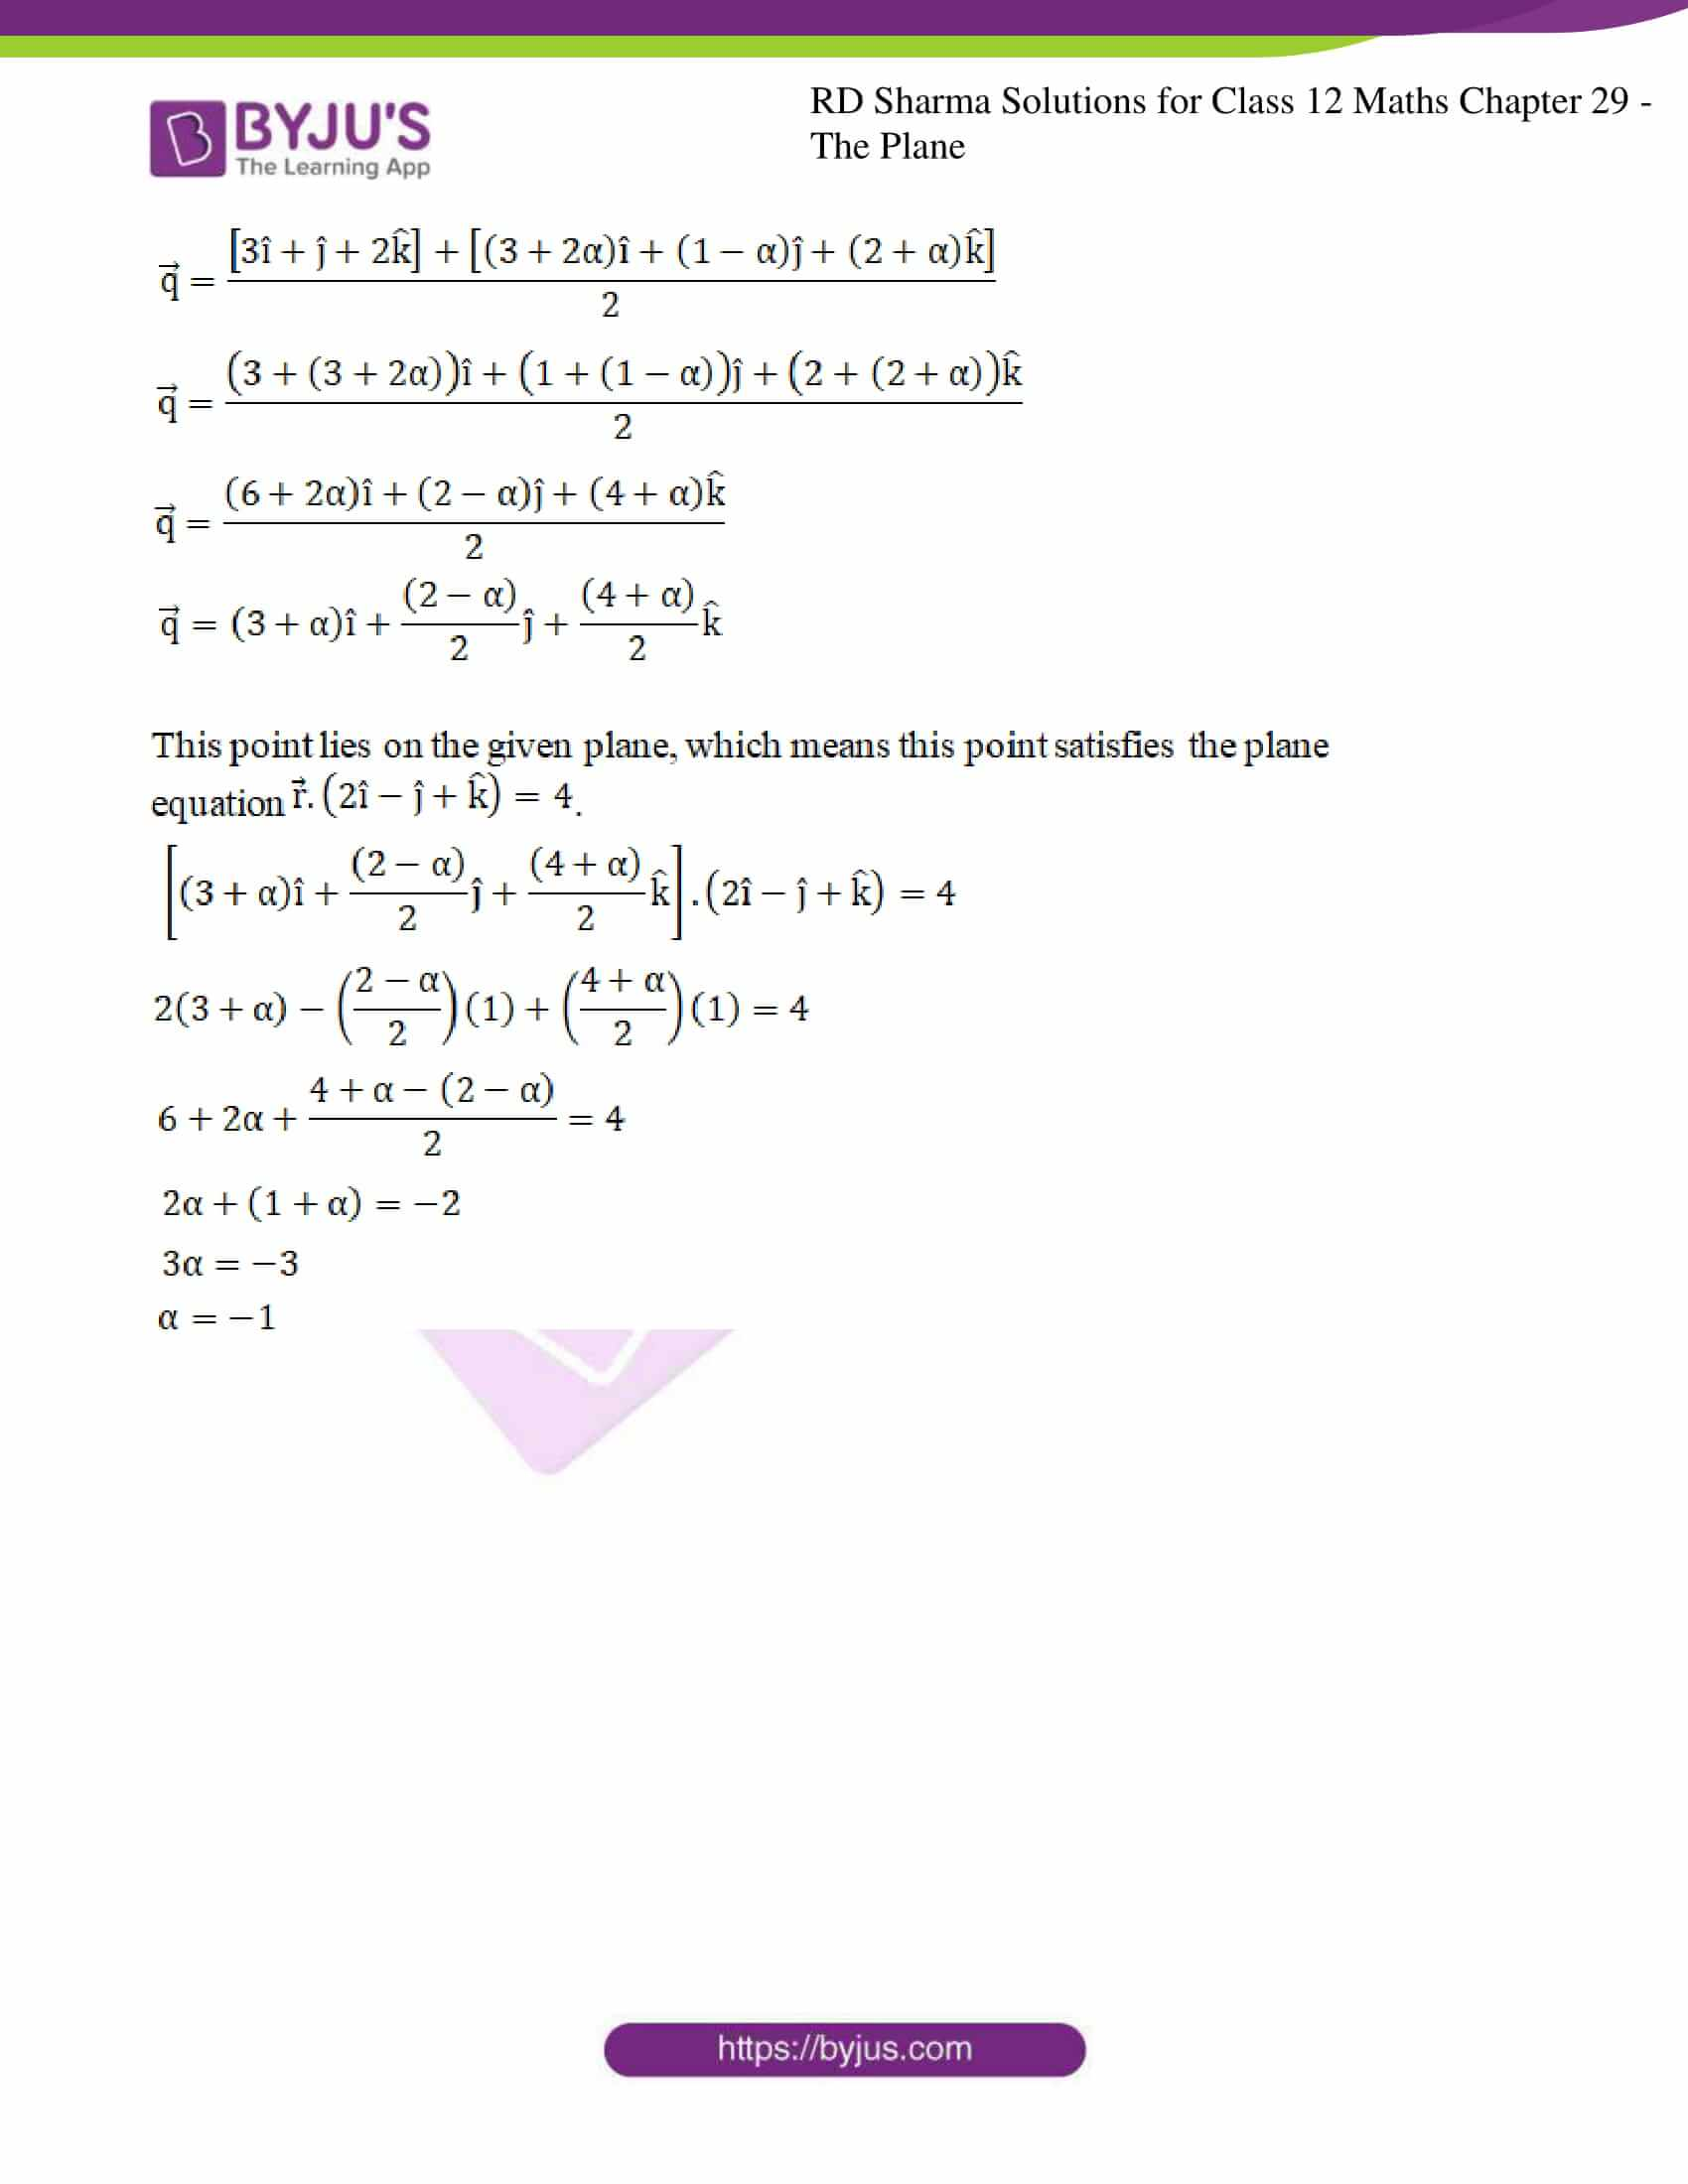 rd sharma solutions for class 12 maths chapter 29 ex 15 6